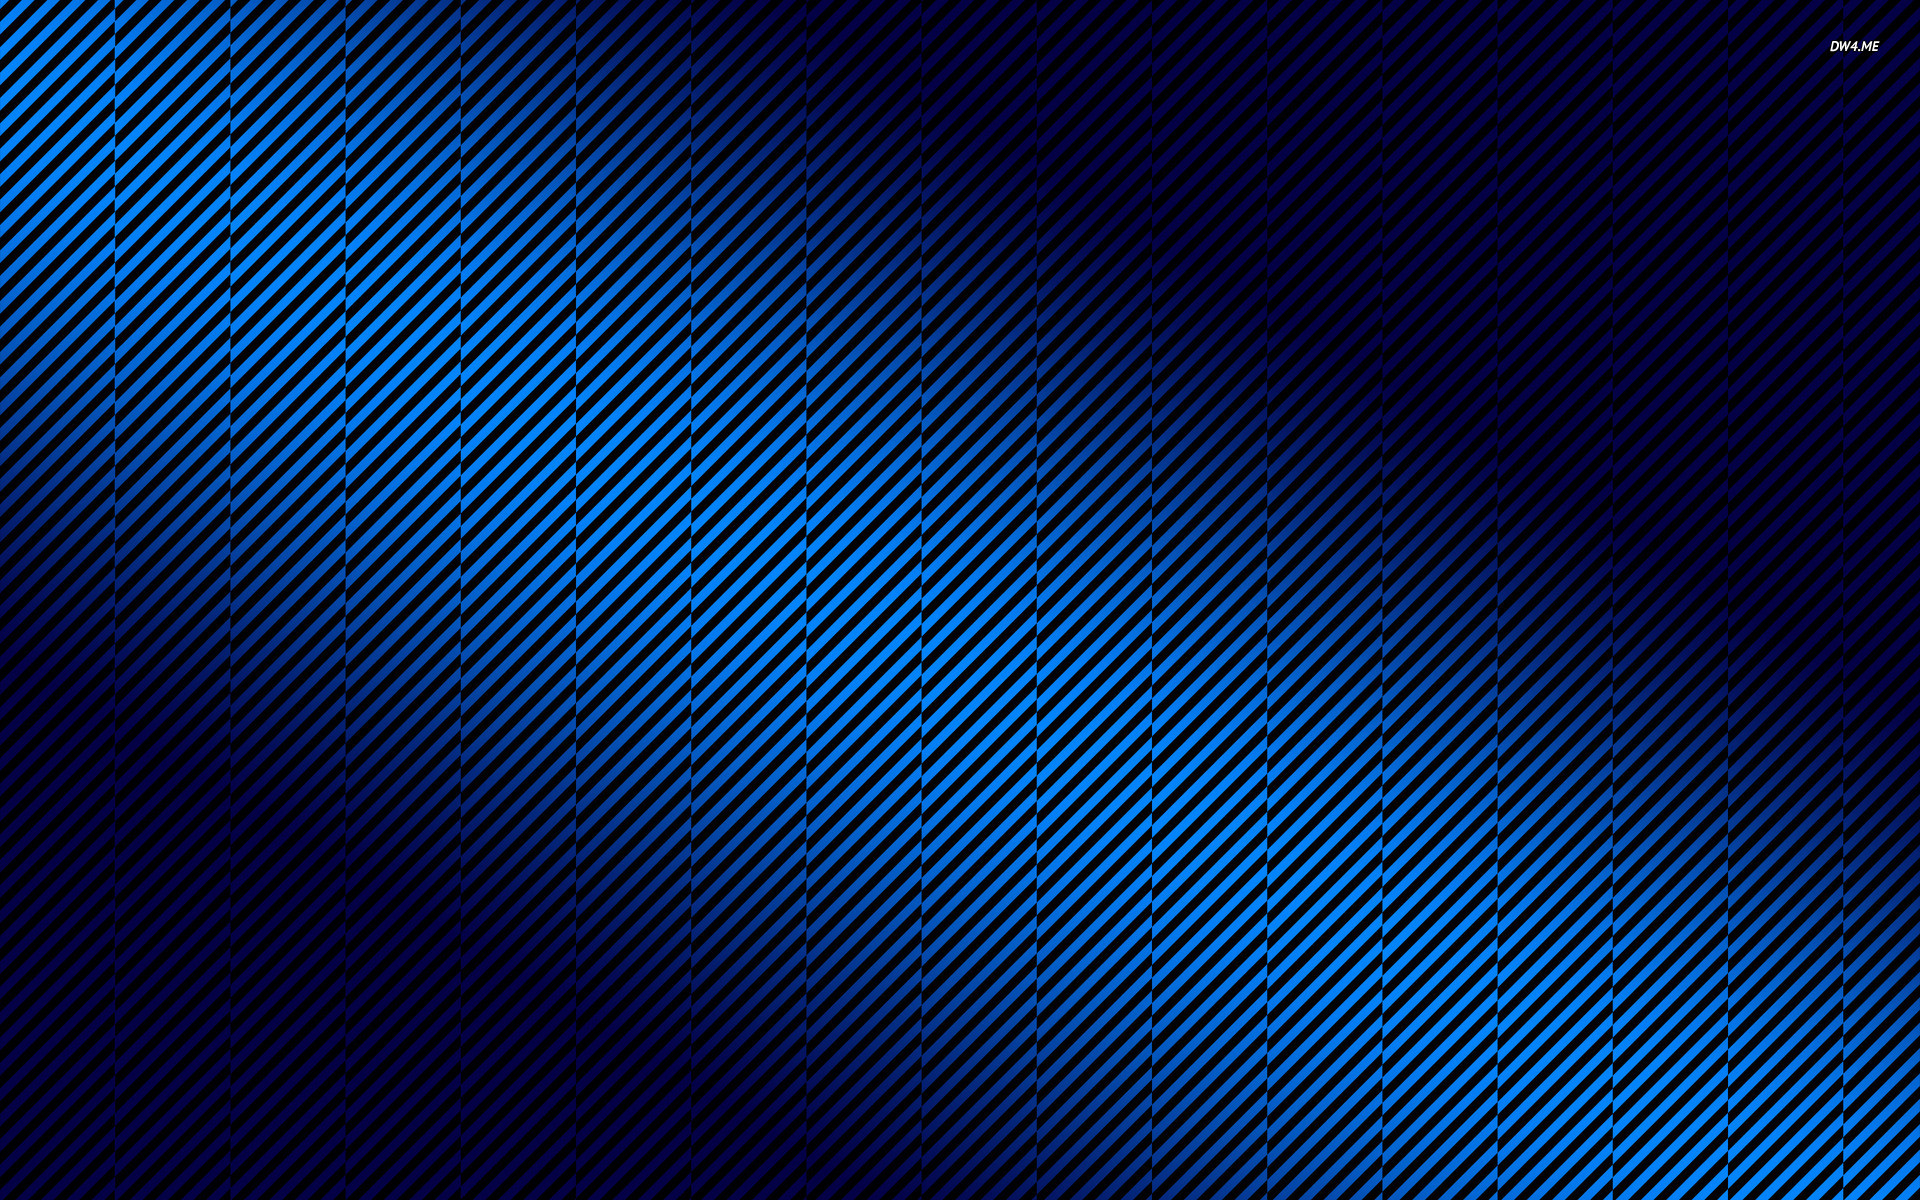 Wallpaper Line Background Texture Pattern Grass HD Picture Image 1920×1200